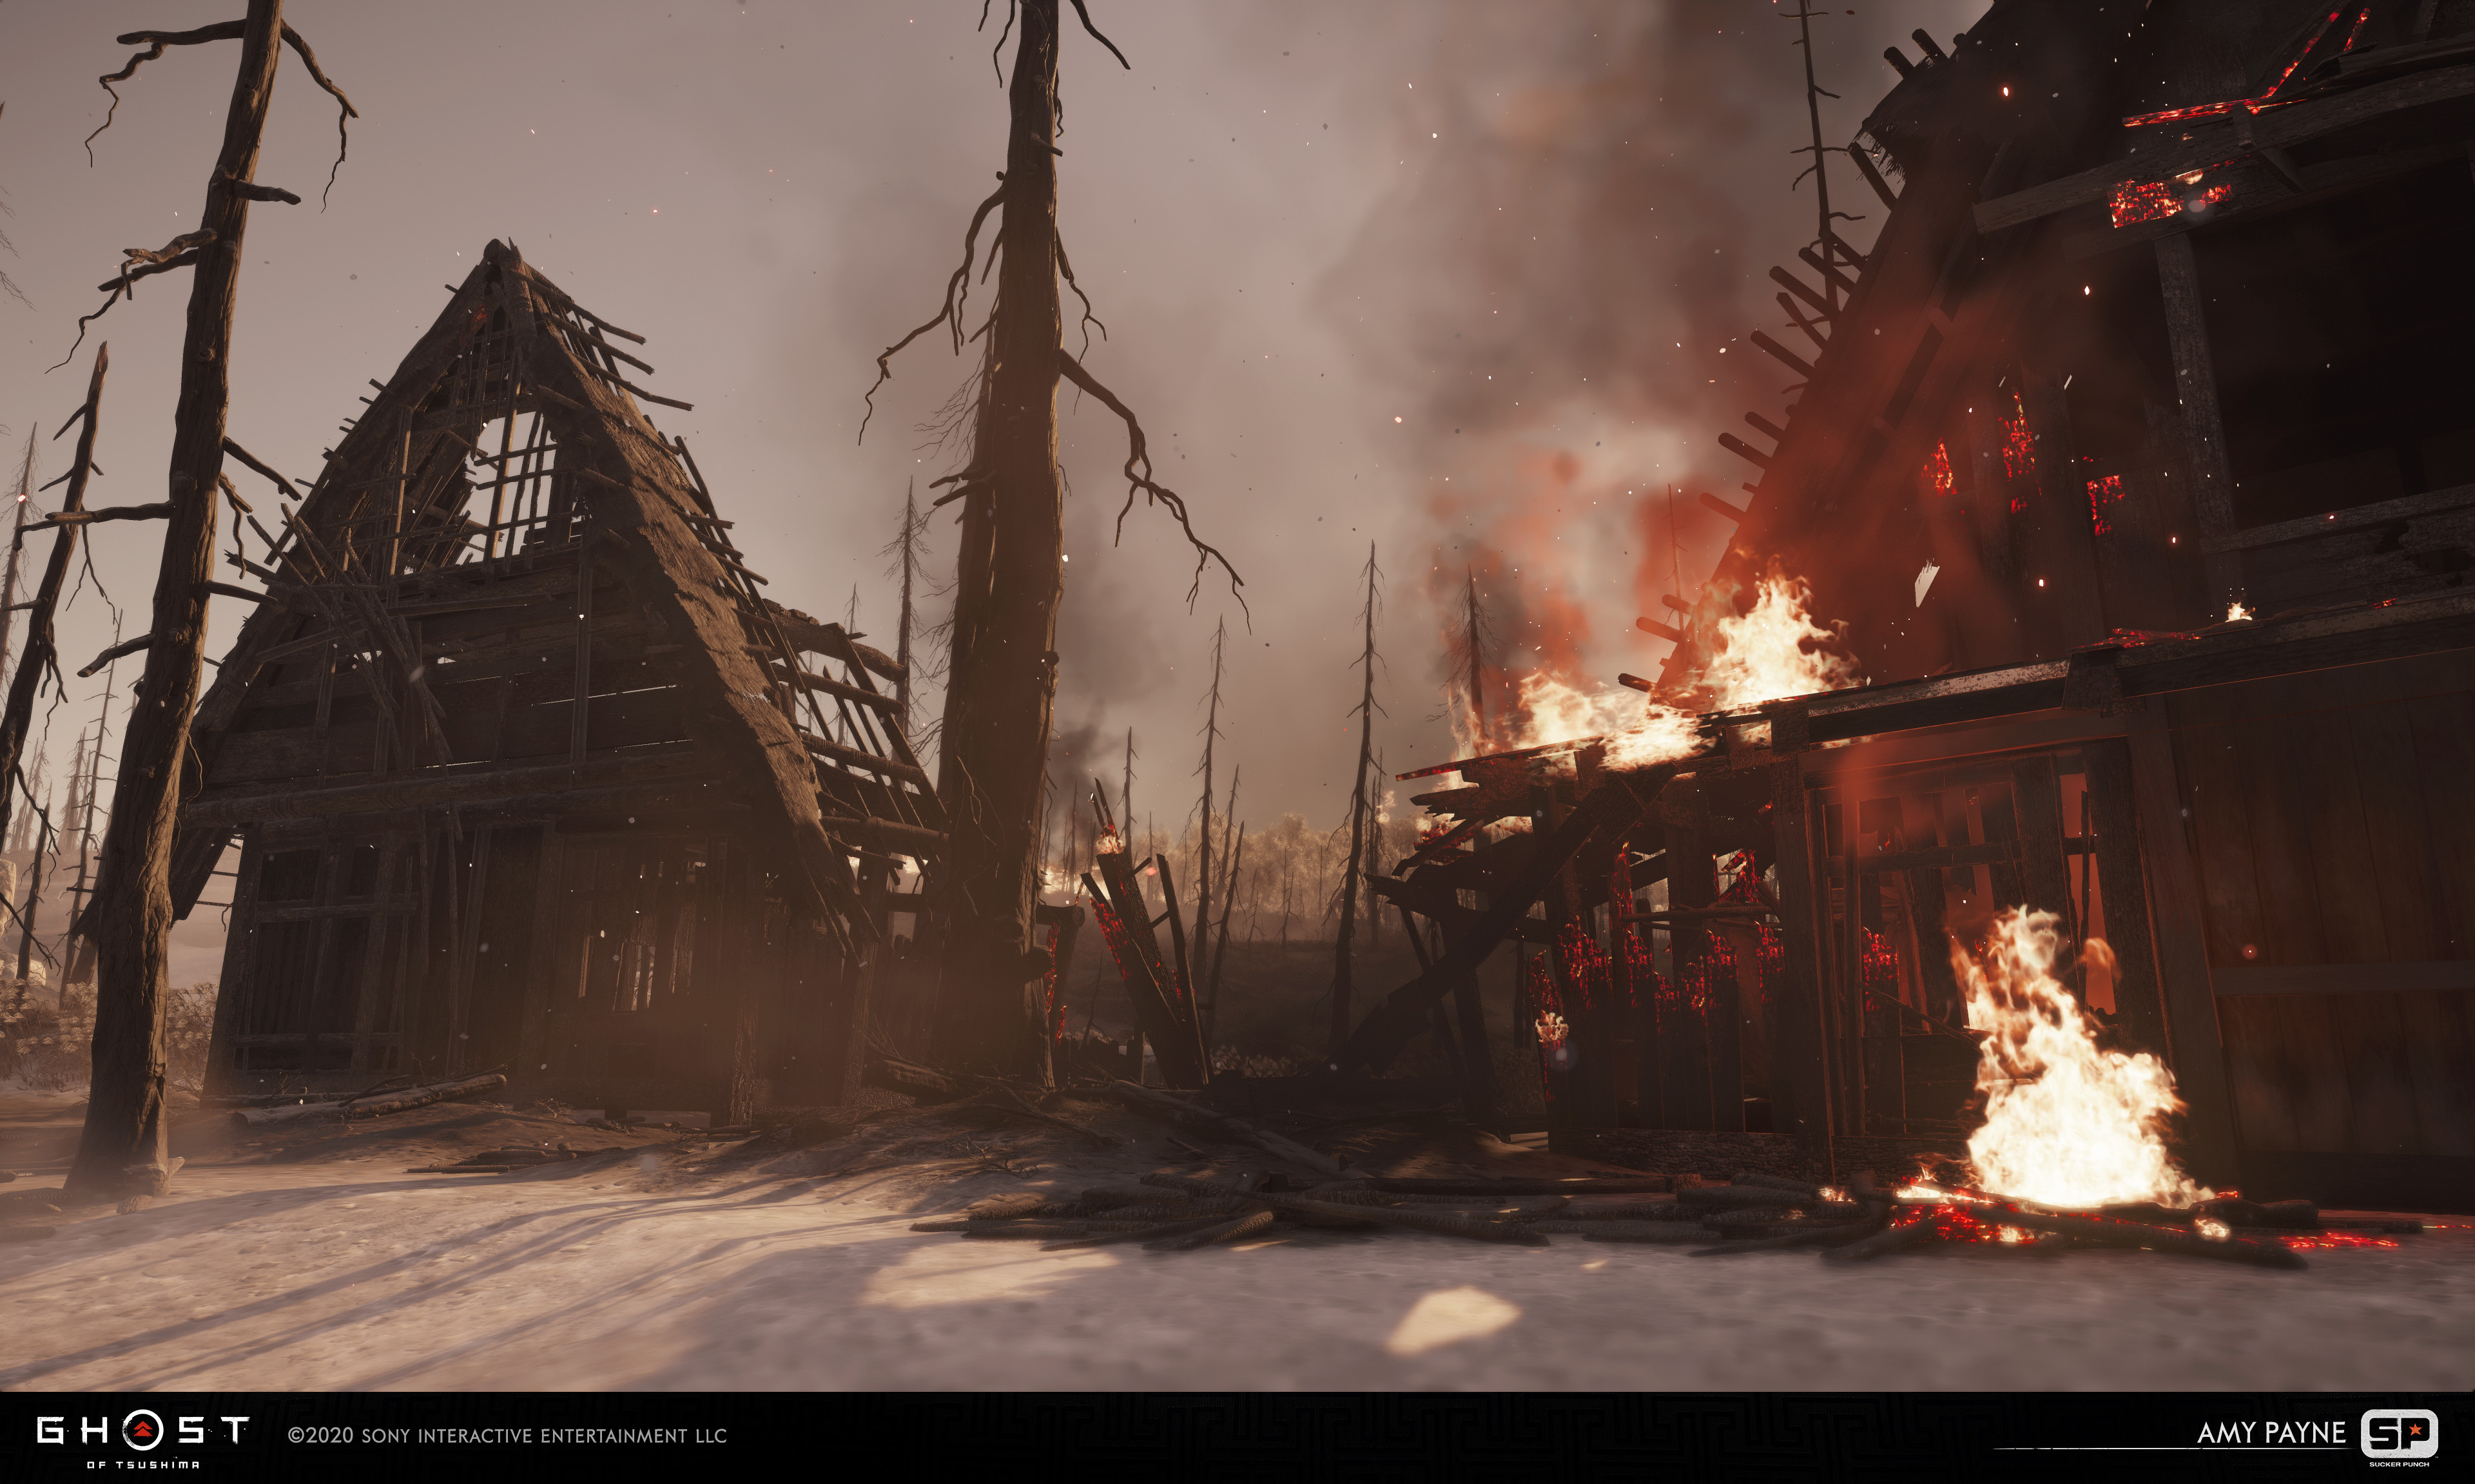 Responsible for taking architecture from block out to final using in house textures as well as working on burnt section of partially burnt building.